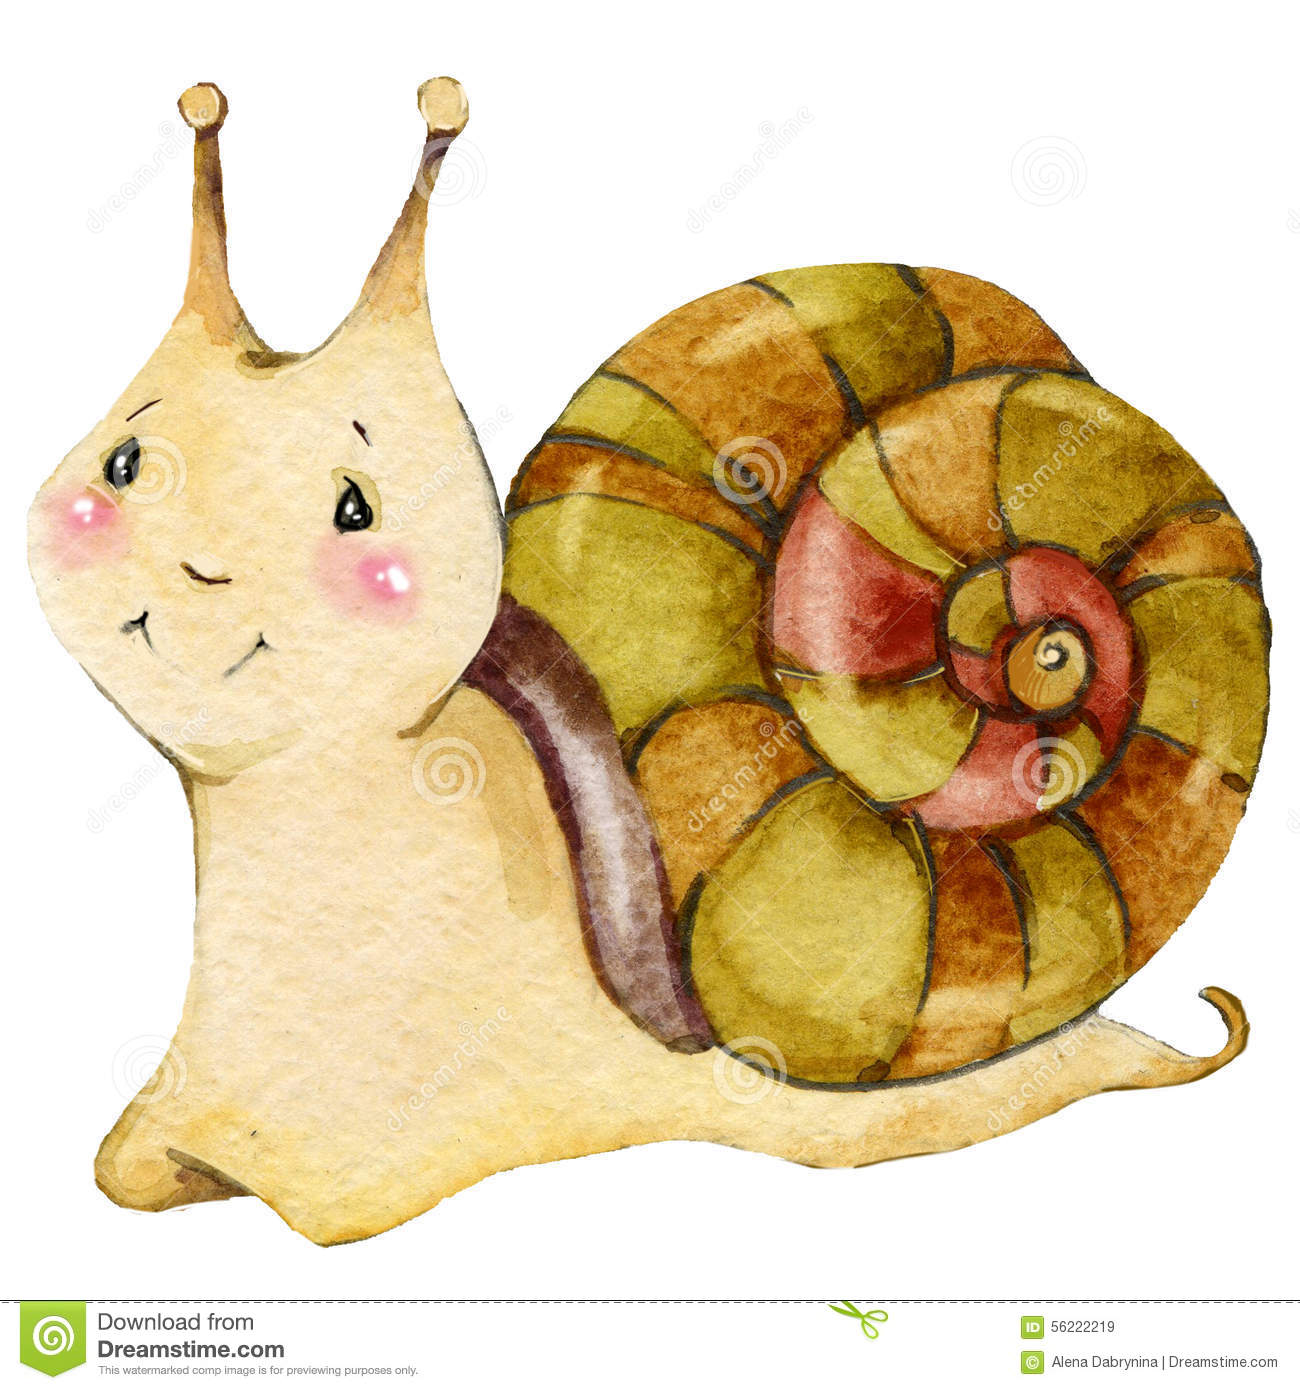 Cartoon insect snail watercolor illustration.